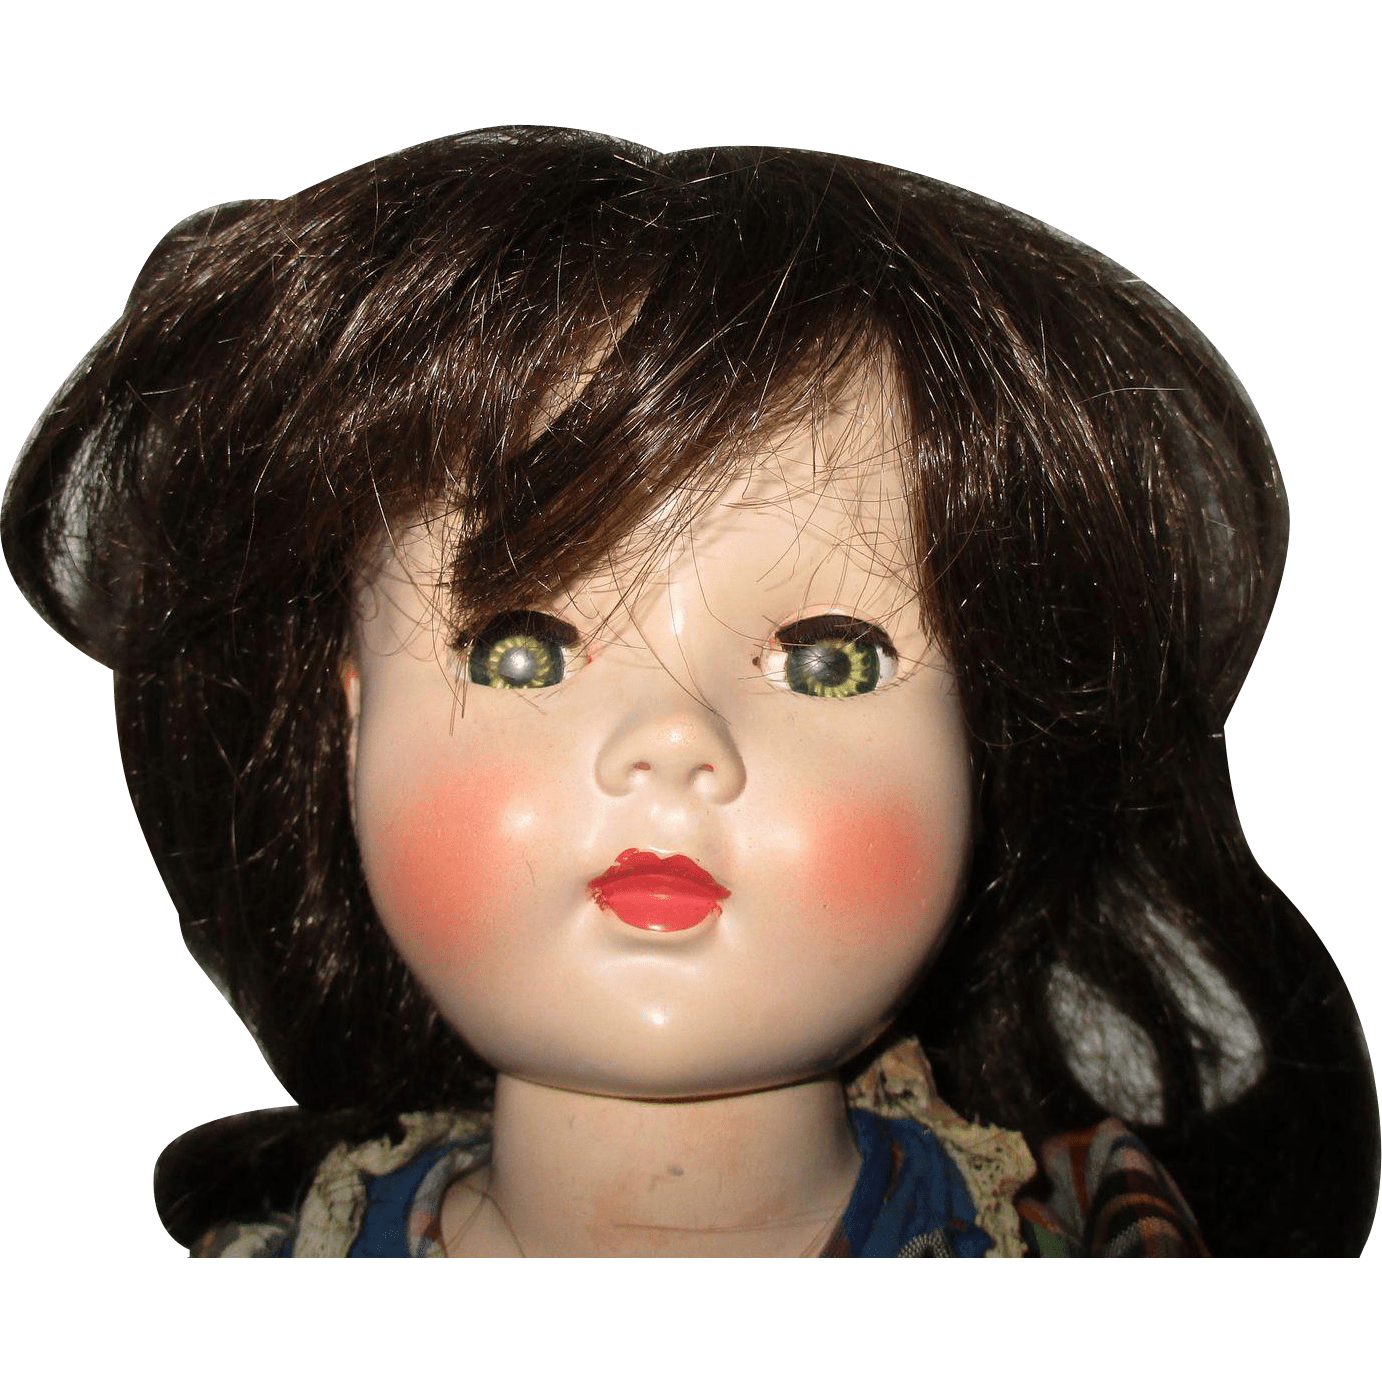 Vintage Human Hair Wig For Your Doll from atticangel on Ruby Lane